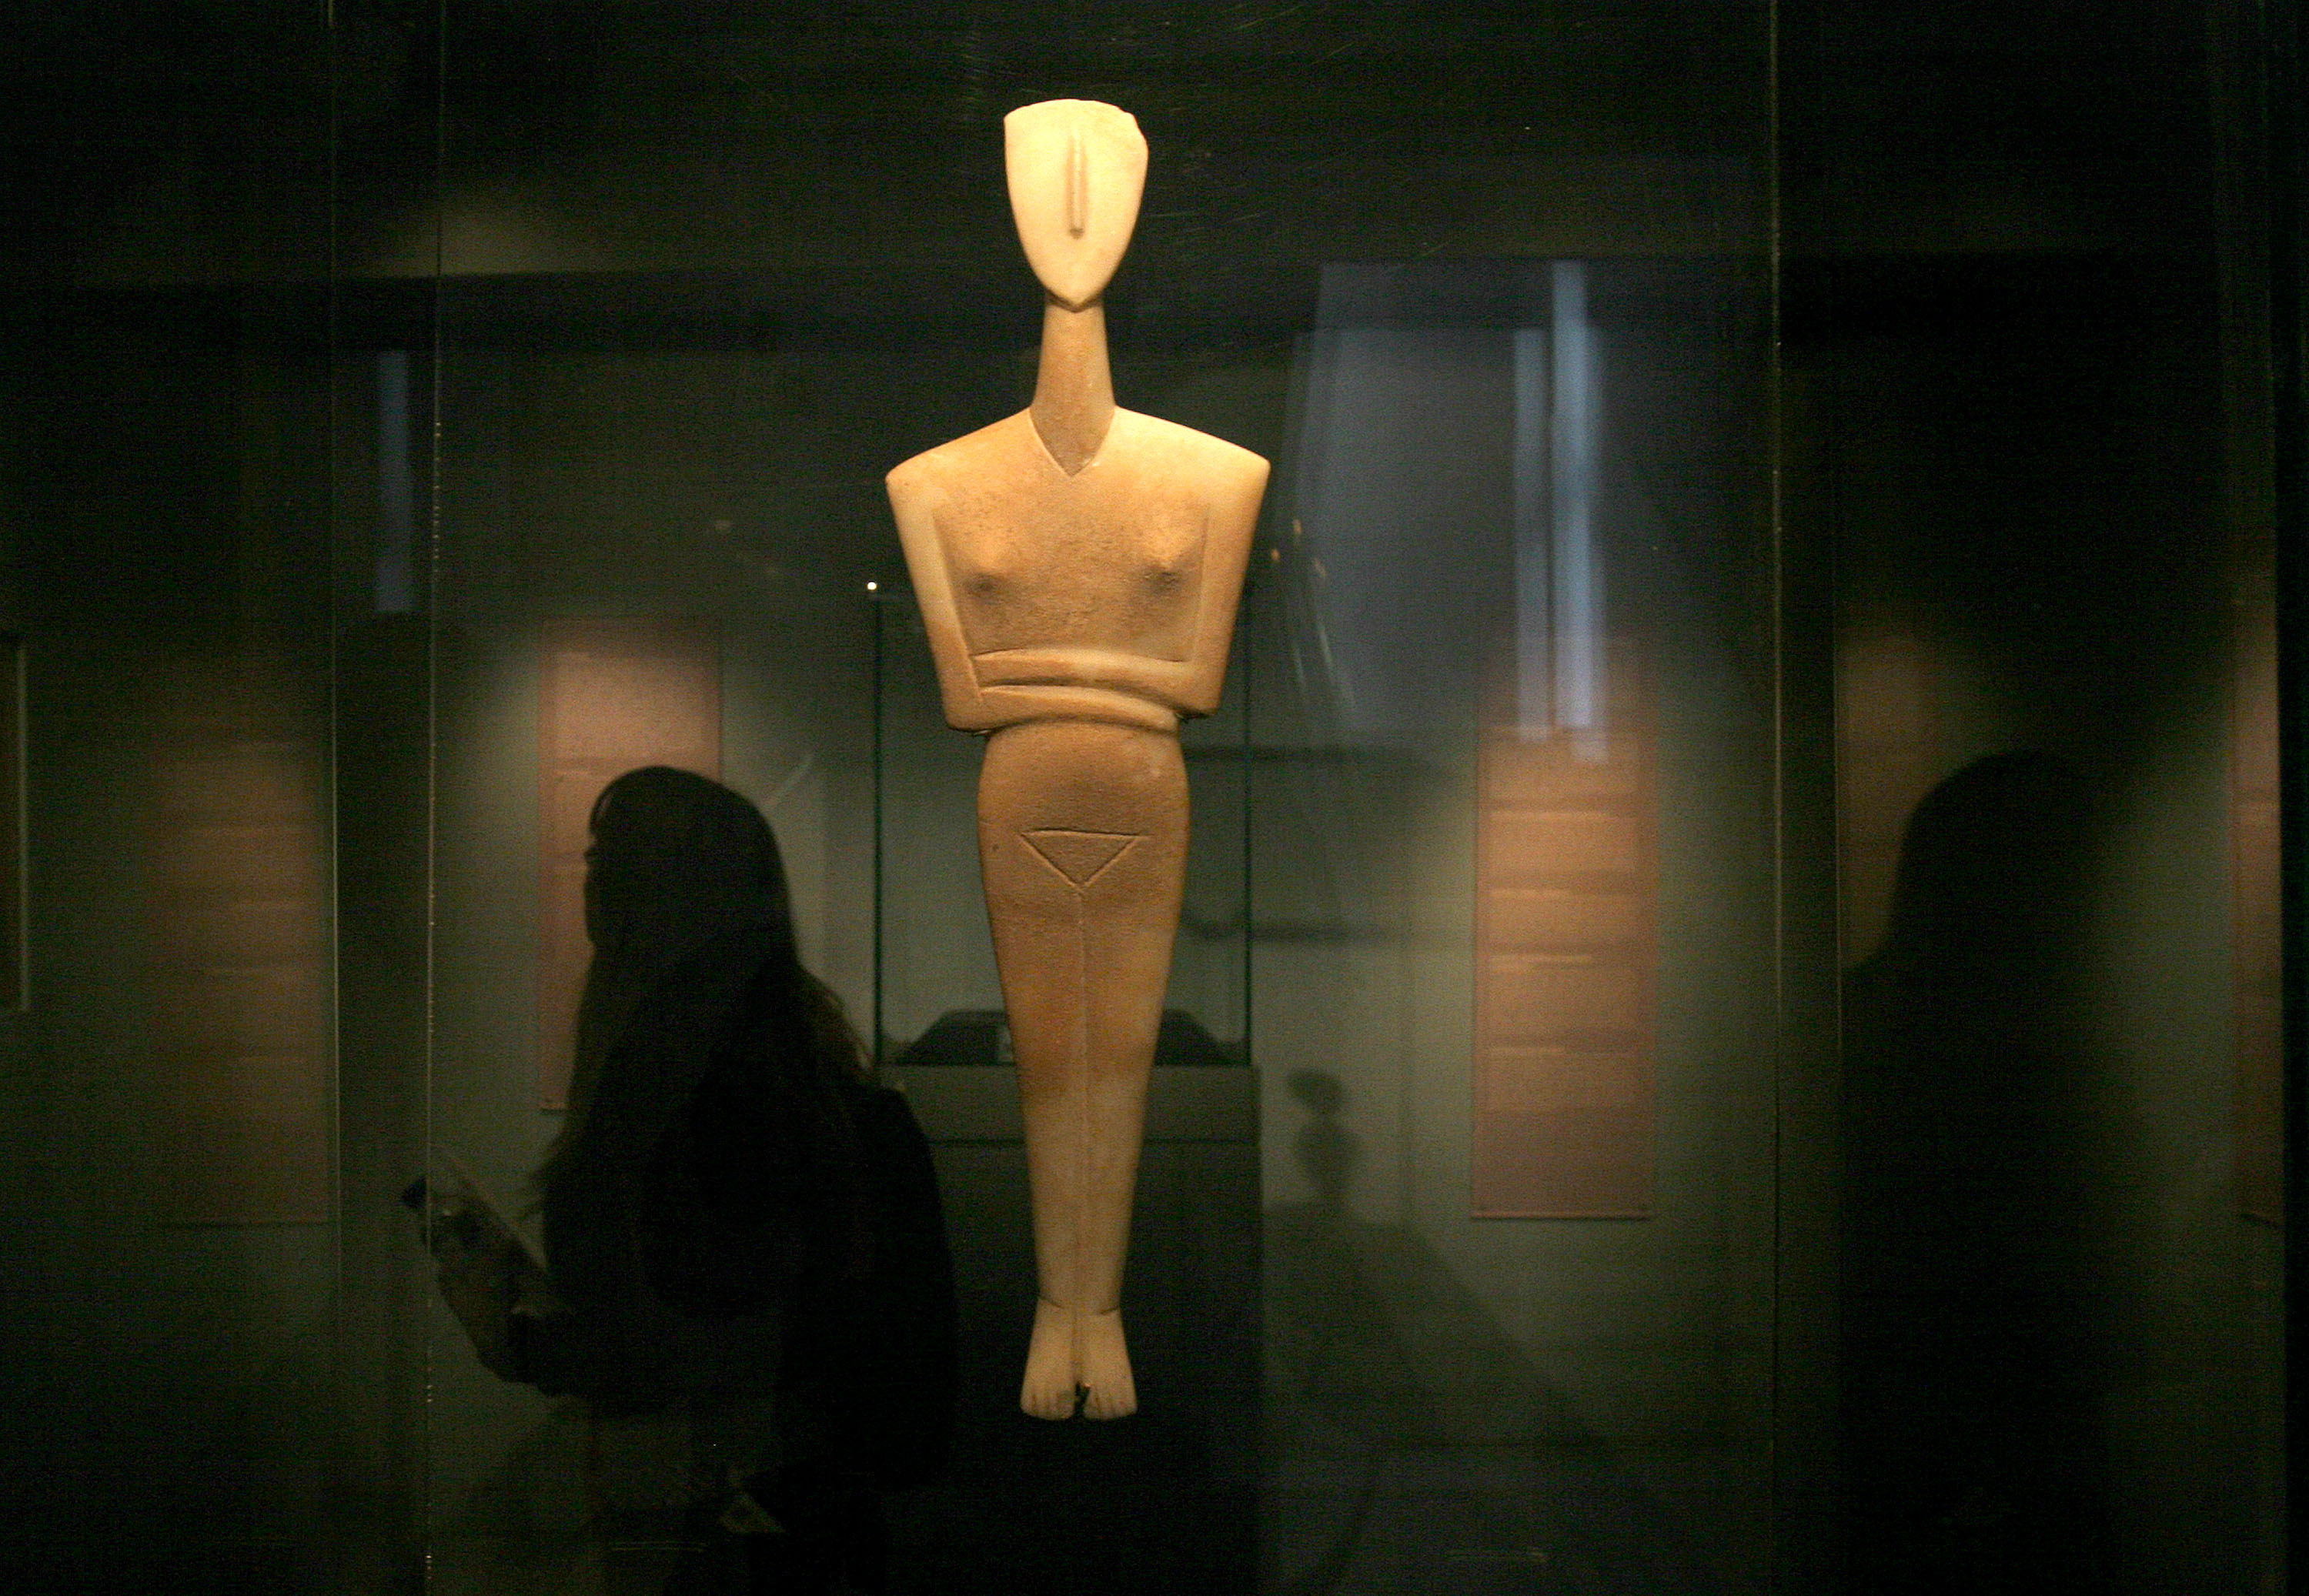 2012-10-31-museums_cycladic.jpg